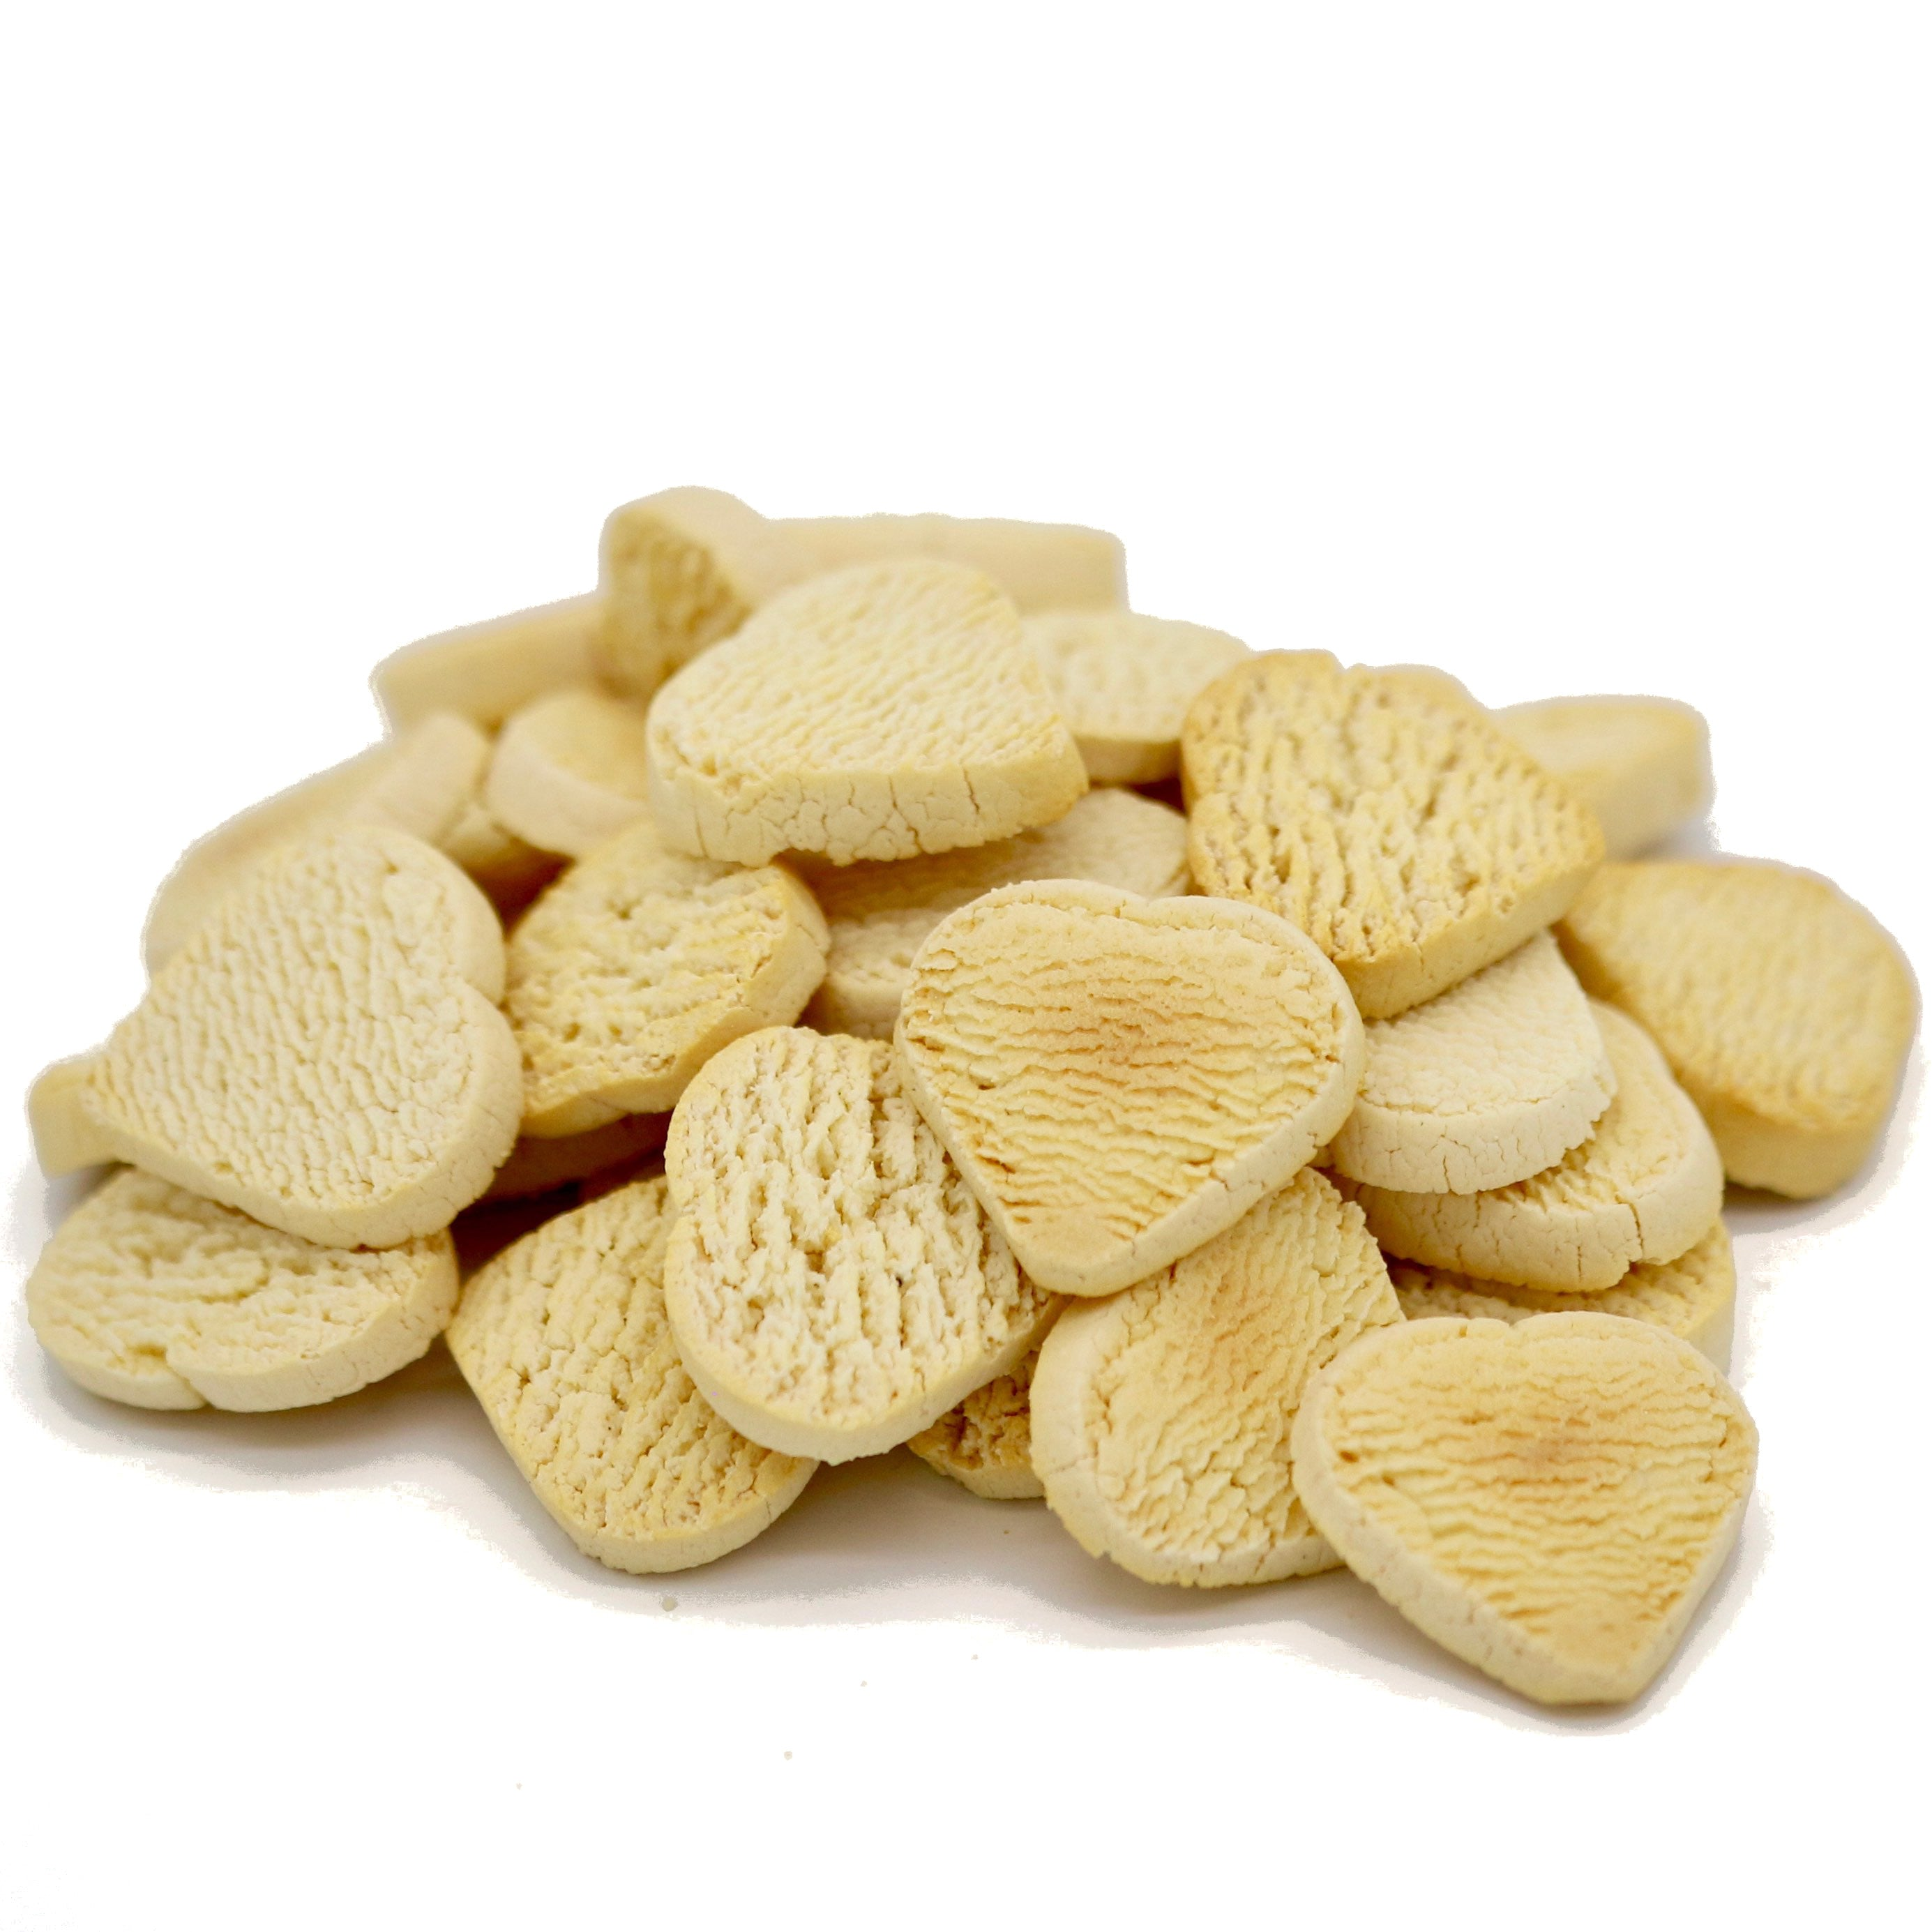 Pumpkin, carrot and sweet potato - 3kg - Heart Shaped - Dog Biscuit